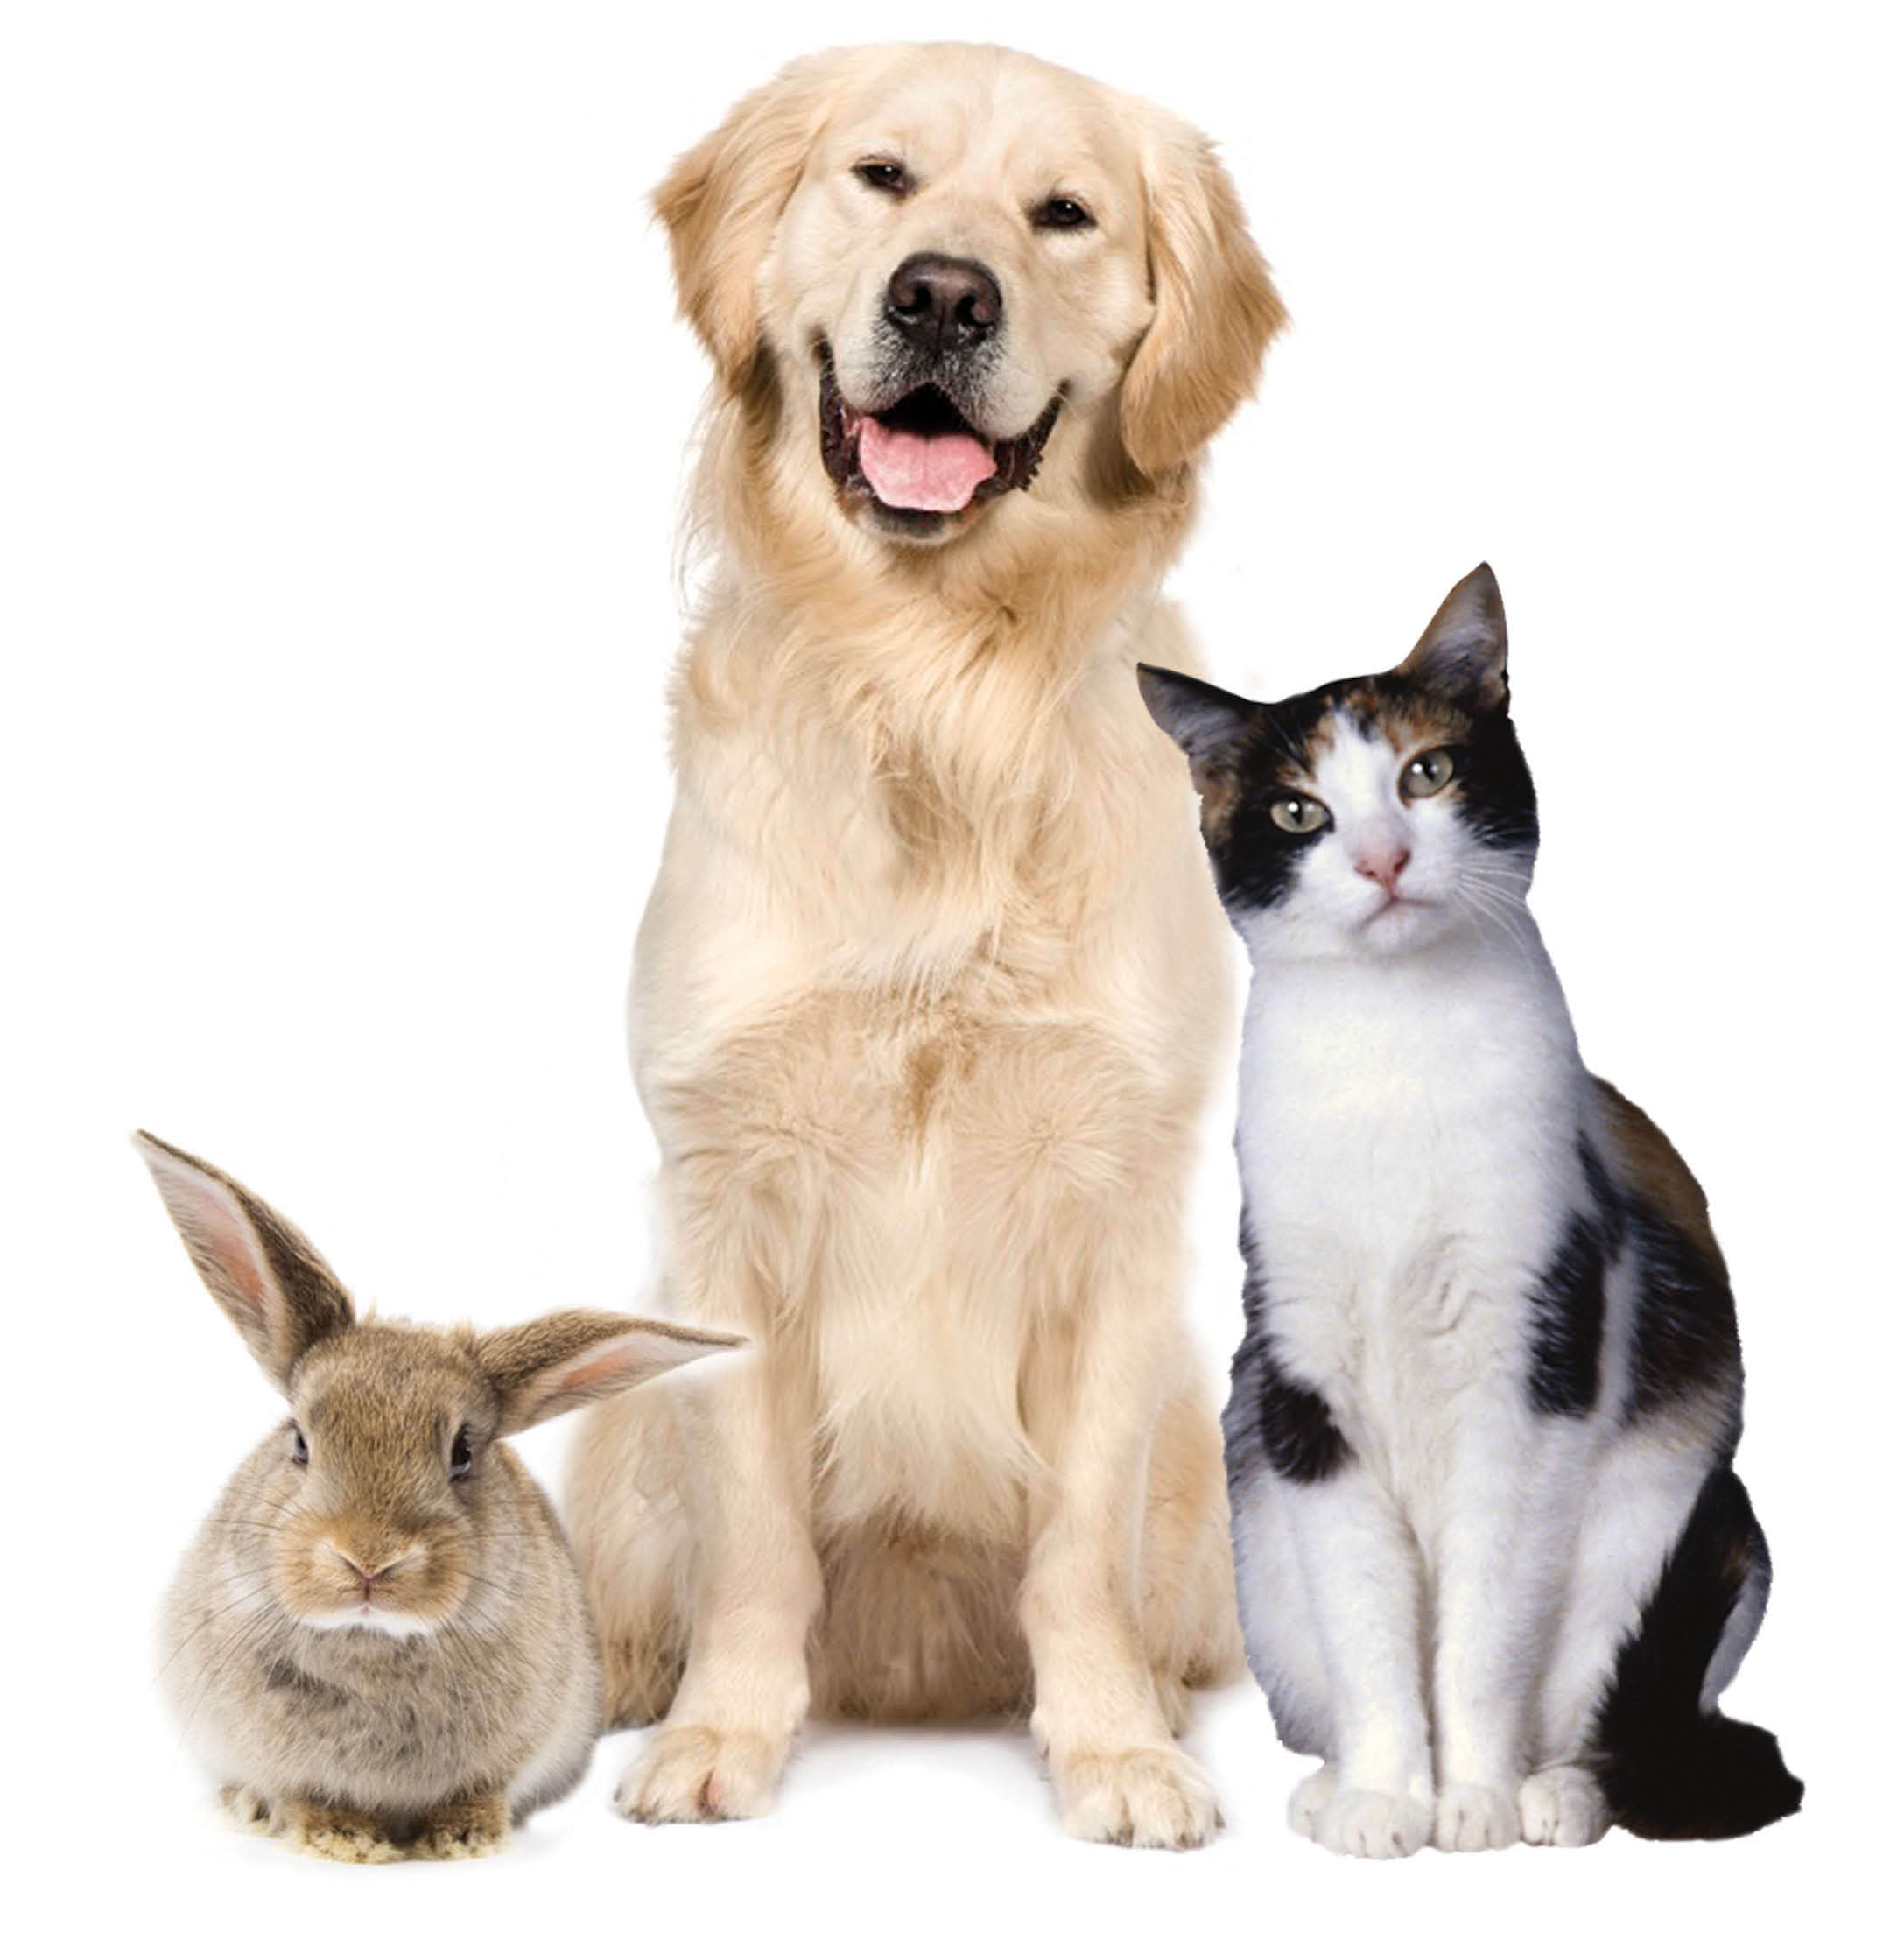 The Grange - Issaquah, WA - Healthy gifts for your pets - pet food - pet treats - pet supplies